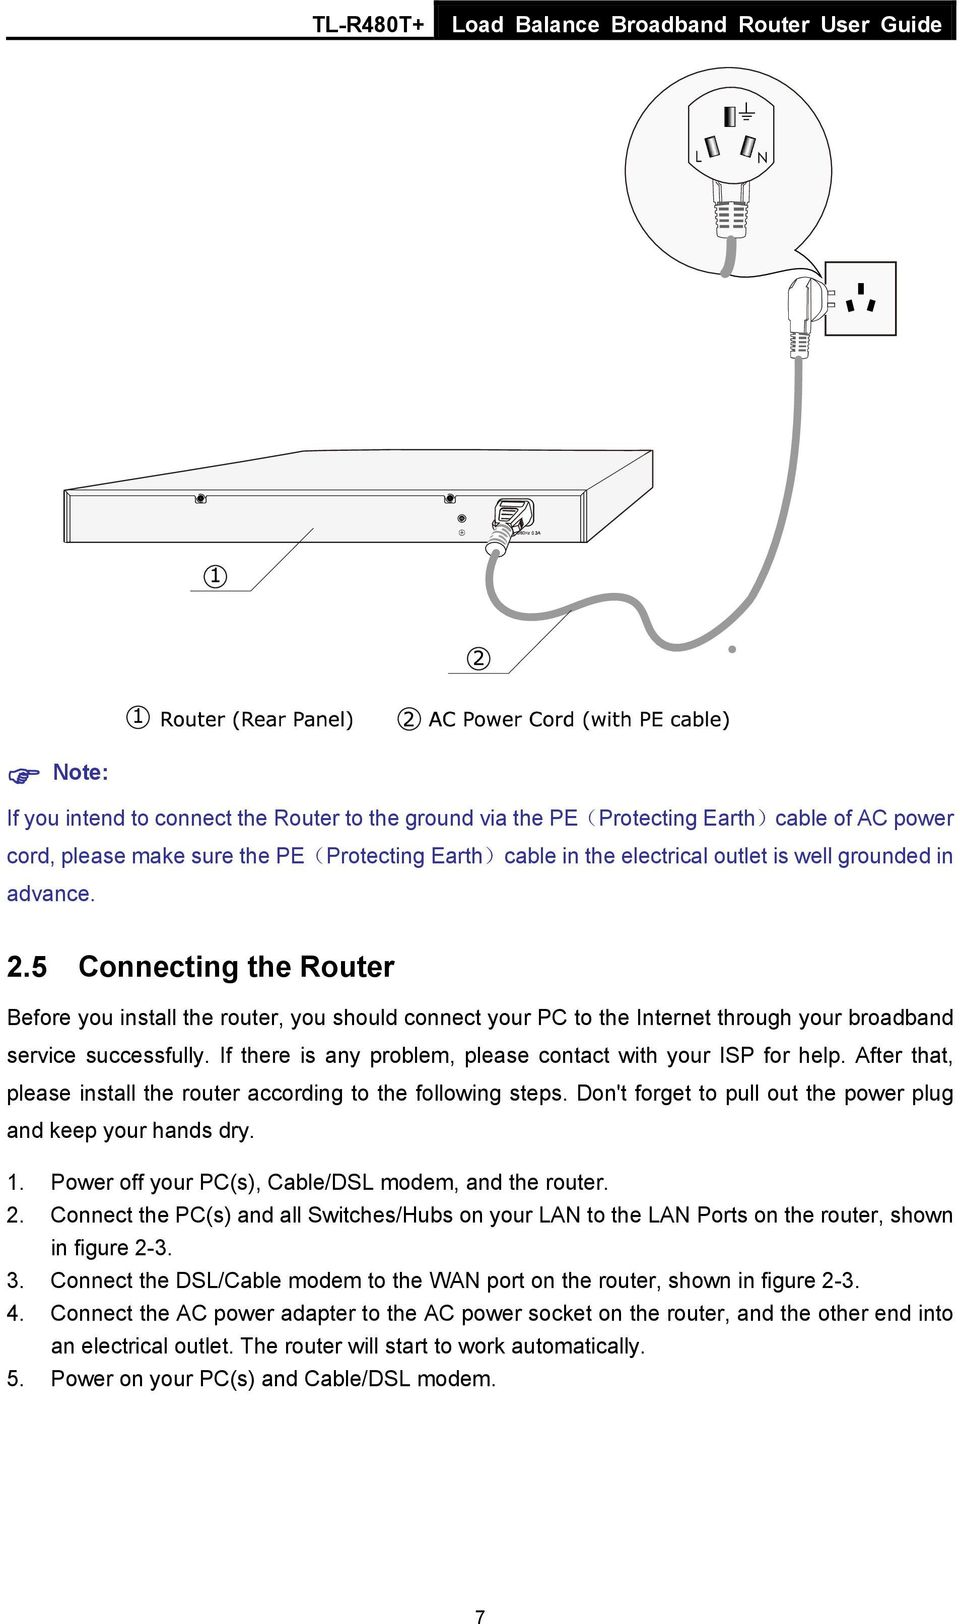 If there is any problem, please contact with your ISP for help. After that, please install the router according to the following steps. Don't forget to pull out the power plug and keep your hands dry.